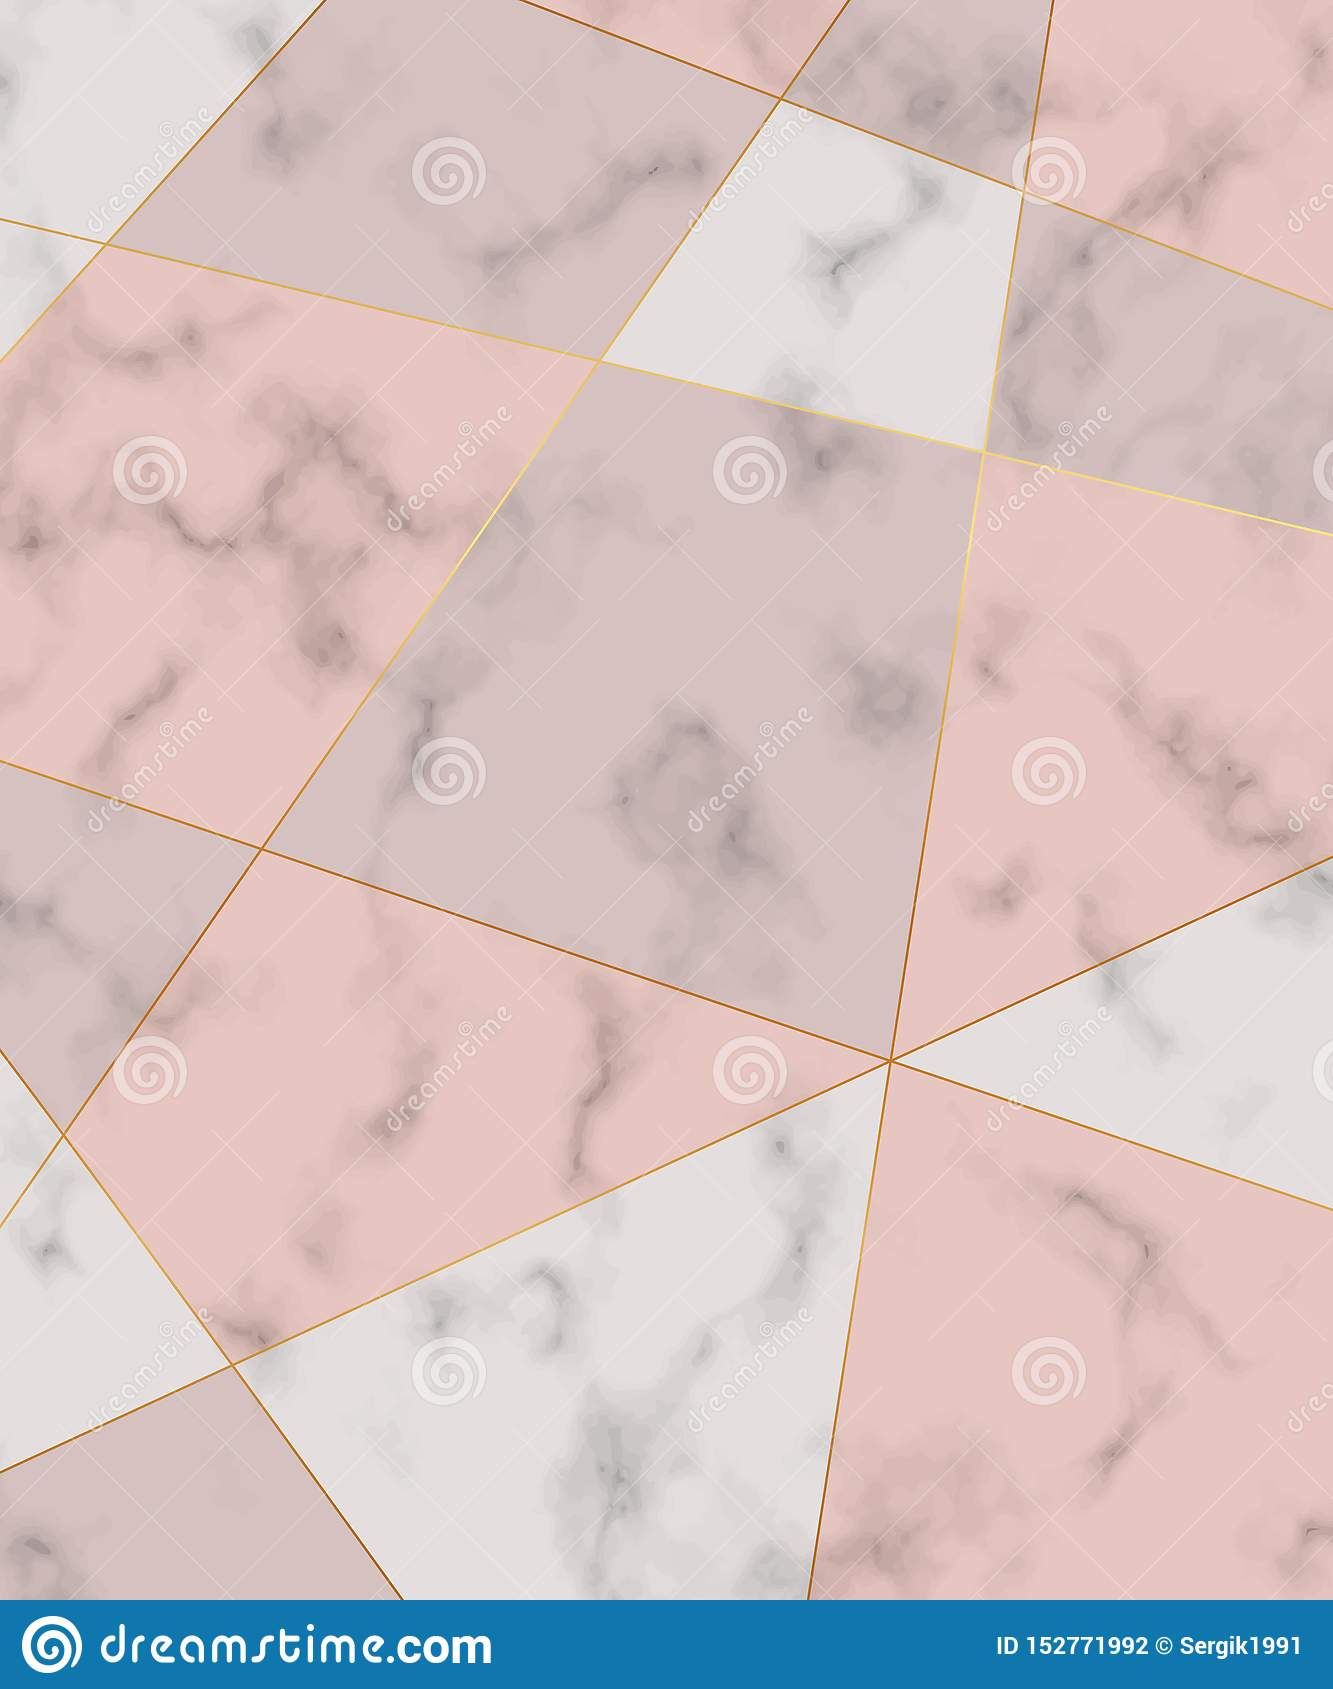 Polygonal lines with geometric design on the marble texture. Trendy background for wallpaper, flyer, poster, card, invitations.